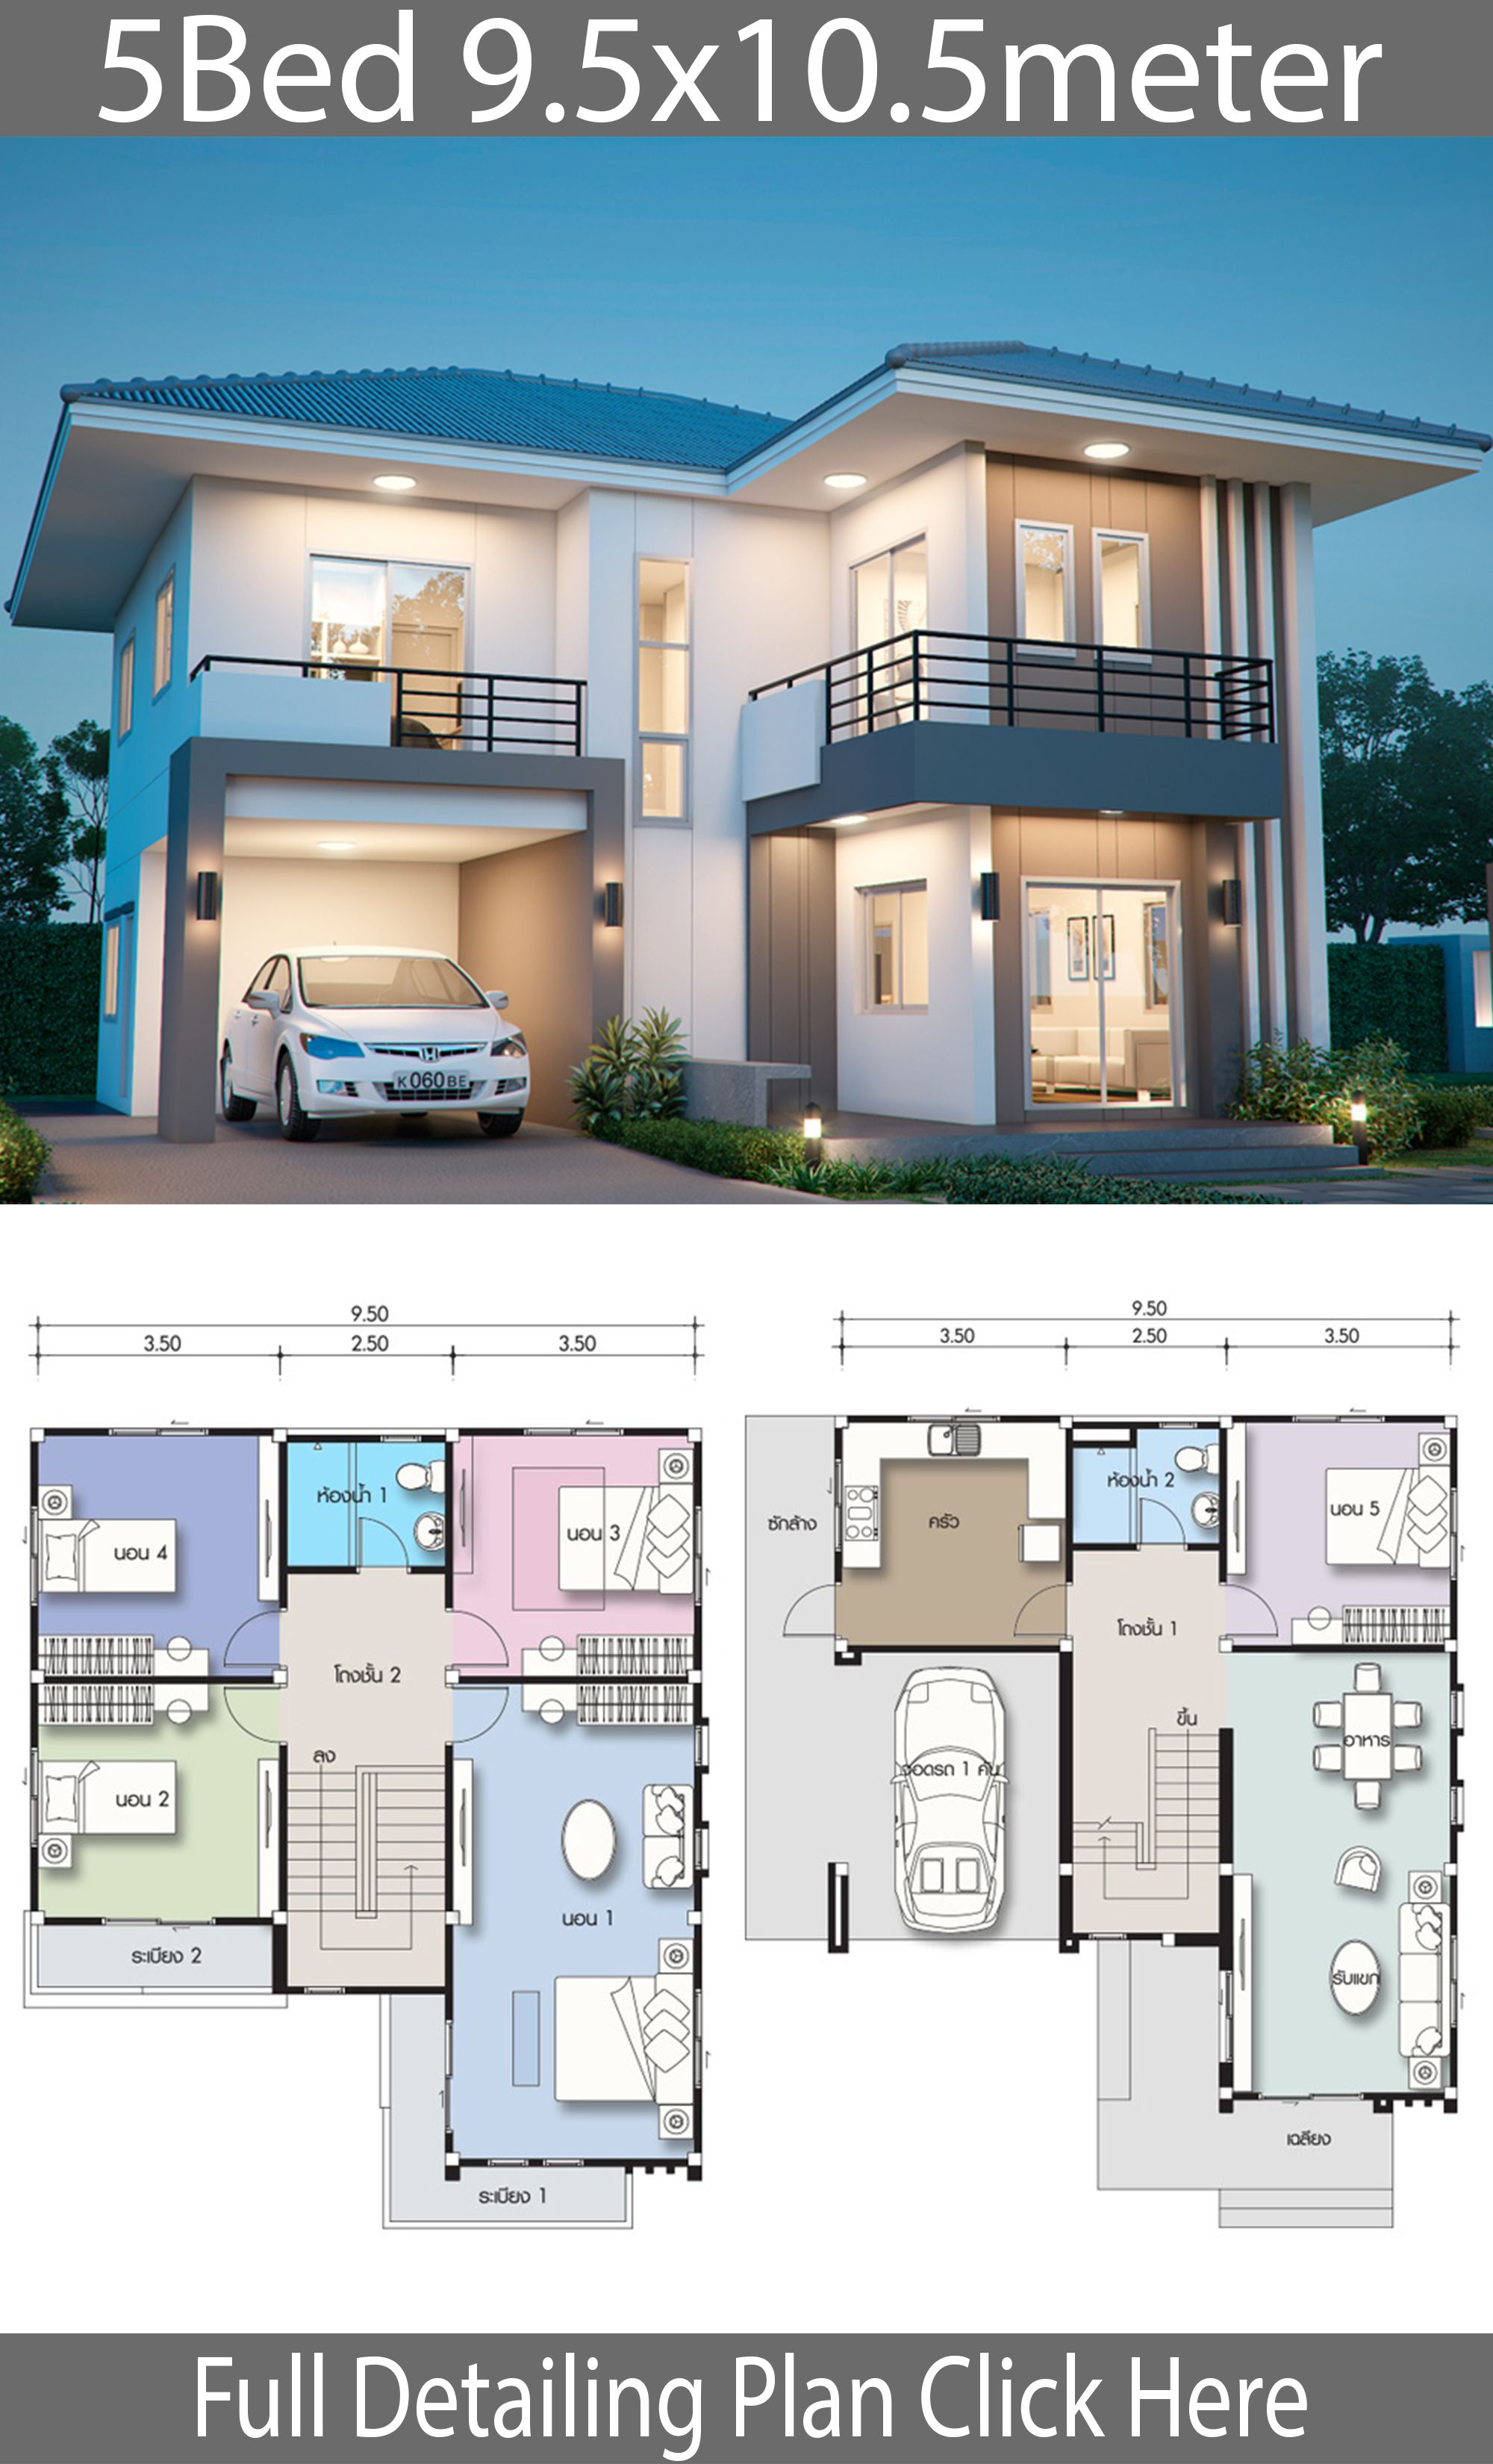 House Design Plan 9 5x10 5m With 5 Bedrooms Architectural House